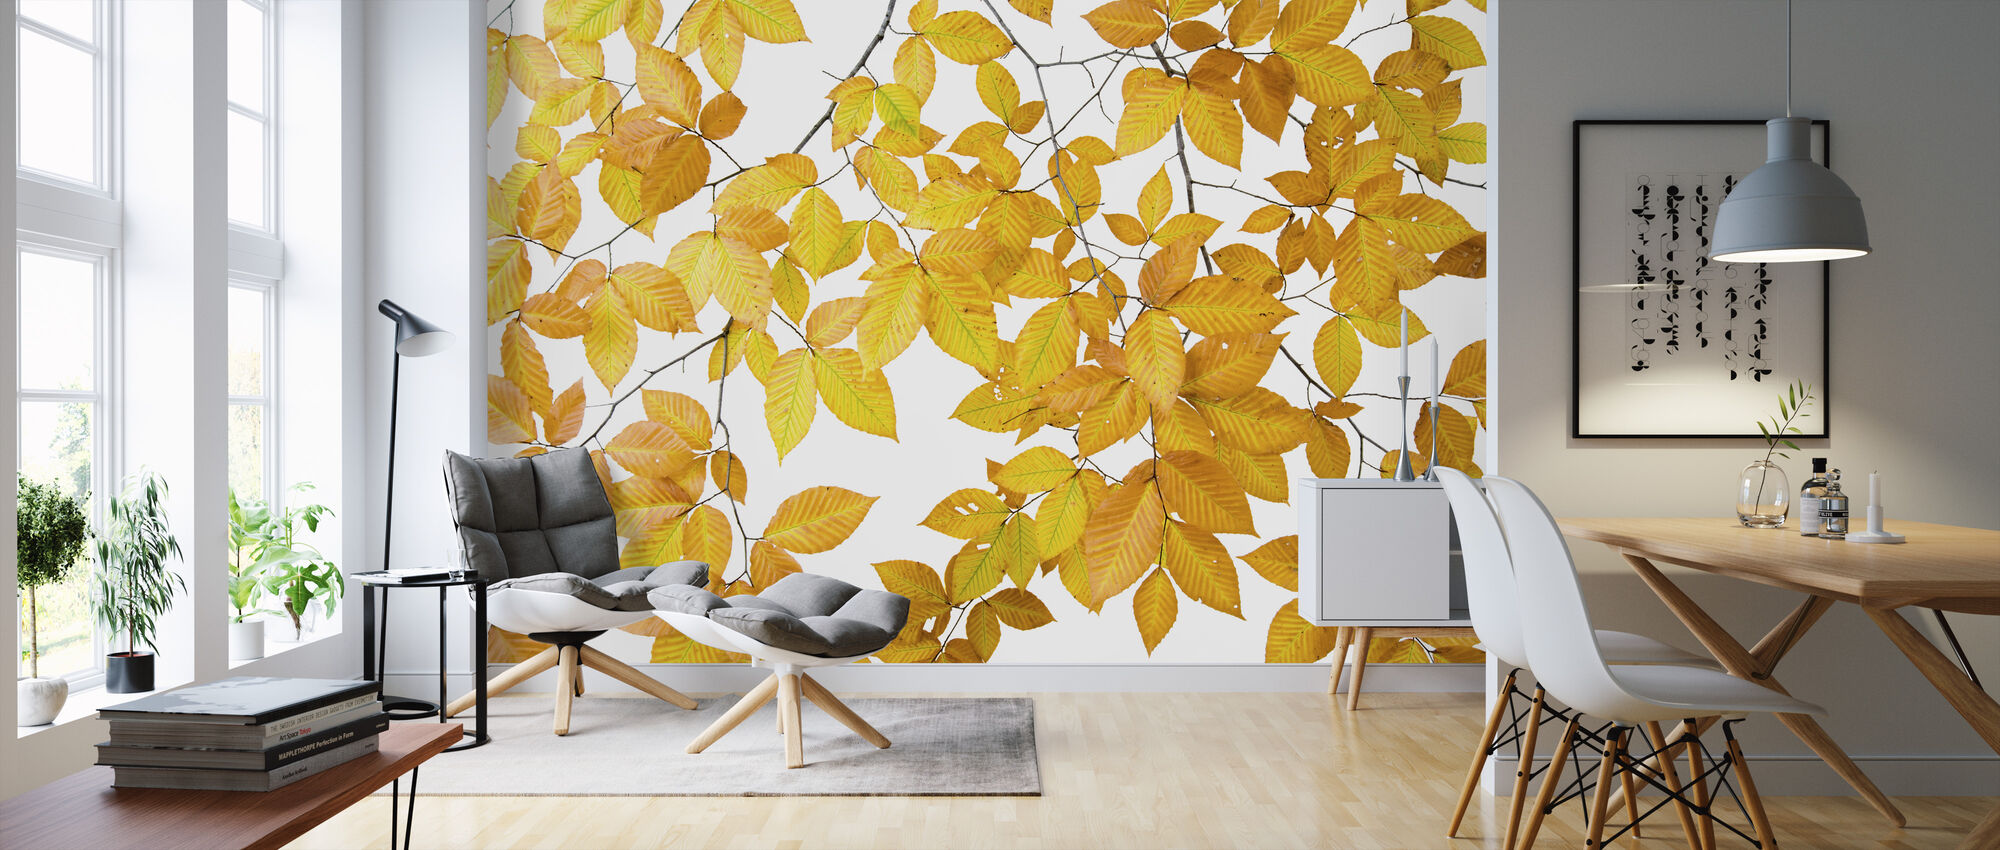 Yellow Leaves on White Background - Wallpaper - Living Room